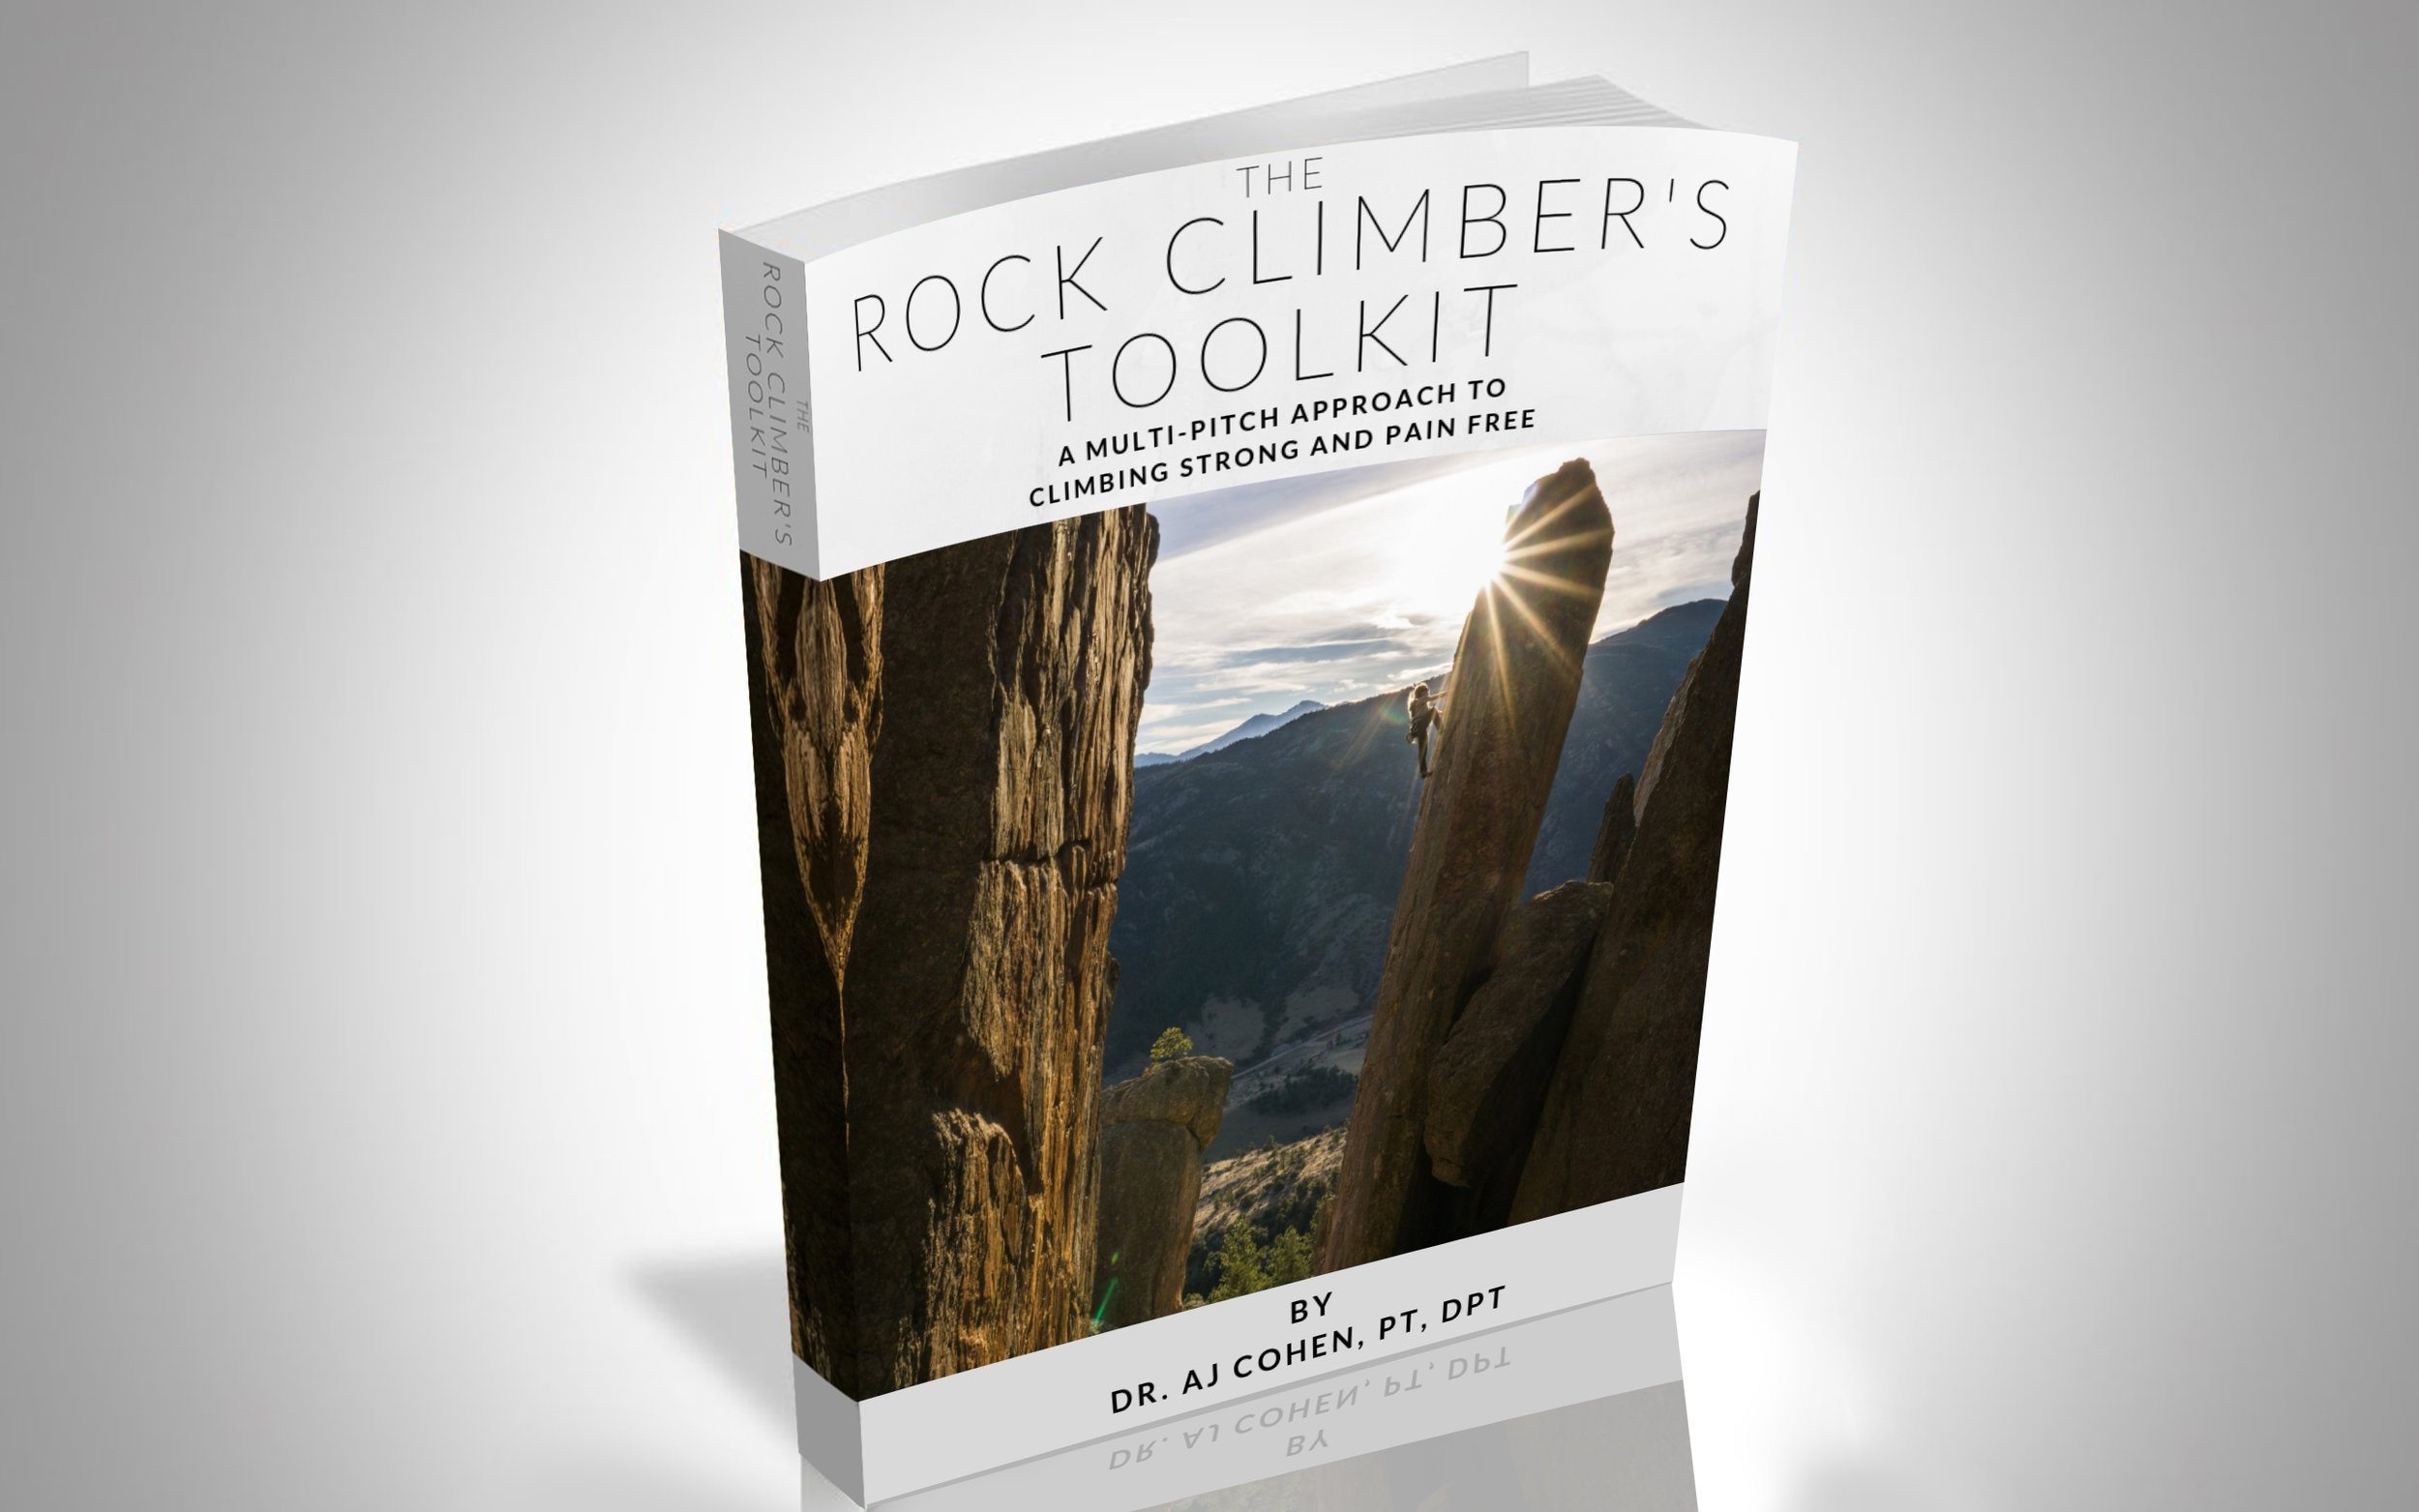 Download the FREERock Climber's Toolkit - A Multi-Pitch Approach to Climbing Strong and Pain-Free